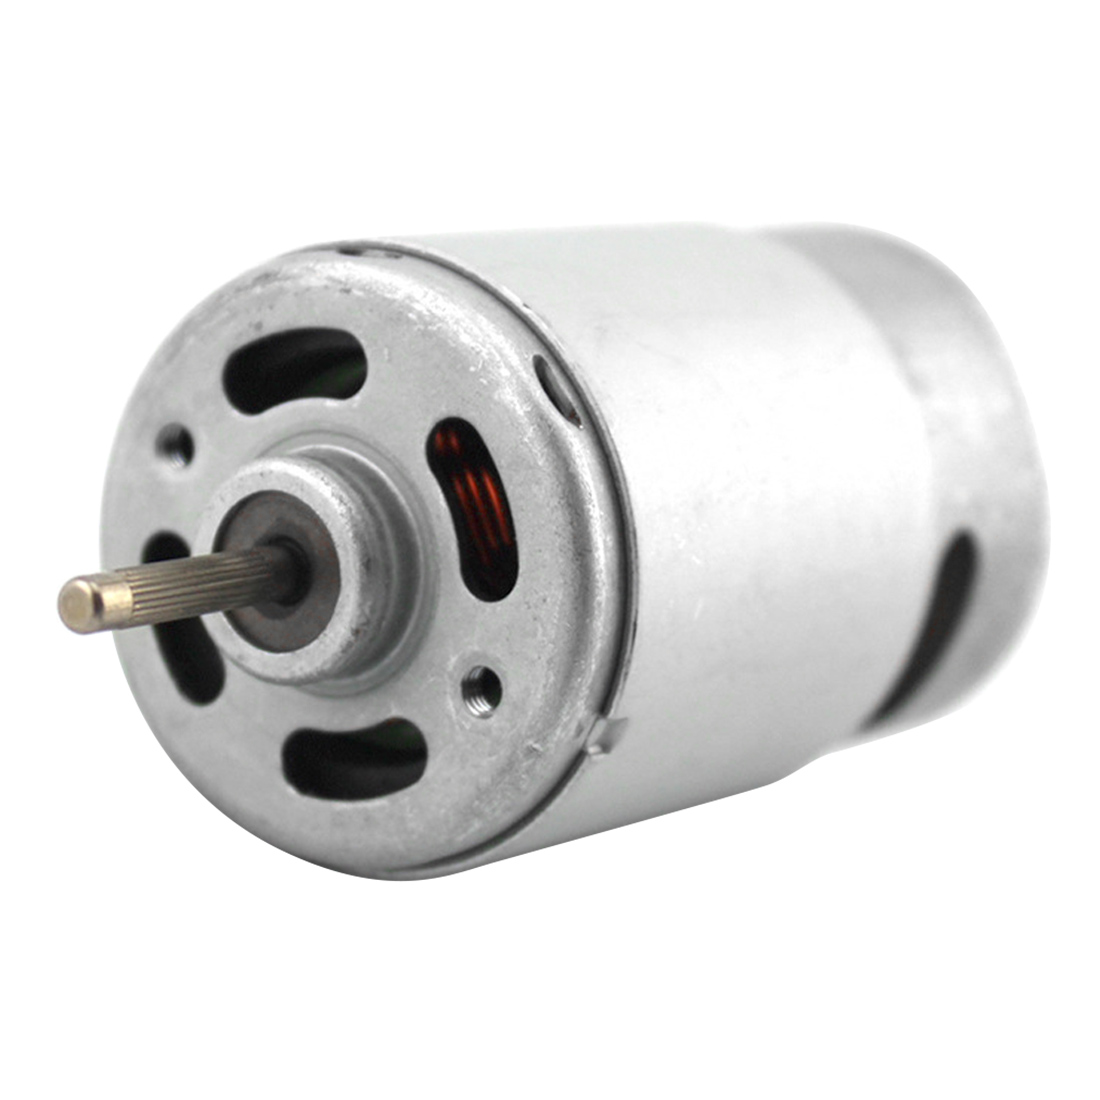 6-12V 550 Mini DC Motor Strong Magnetic Brush Strong Driving Force Large Torque поводковый материал trabucco t force ultra strong saltwater